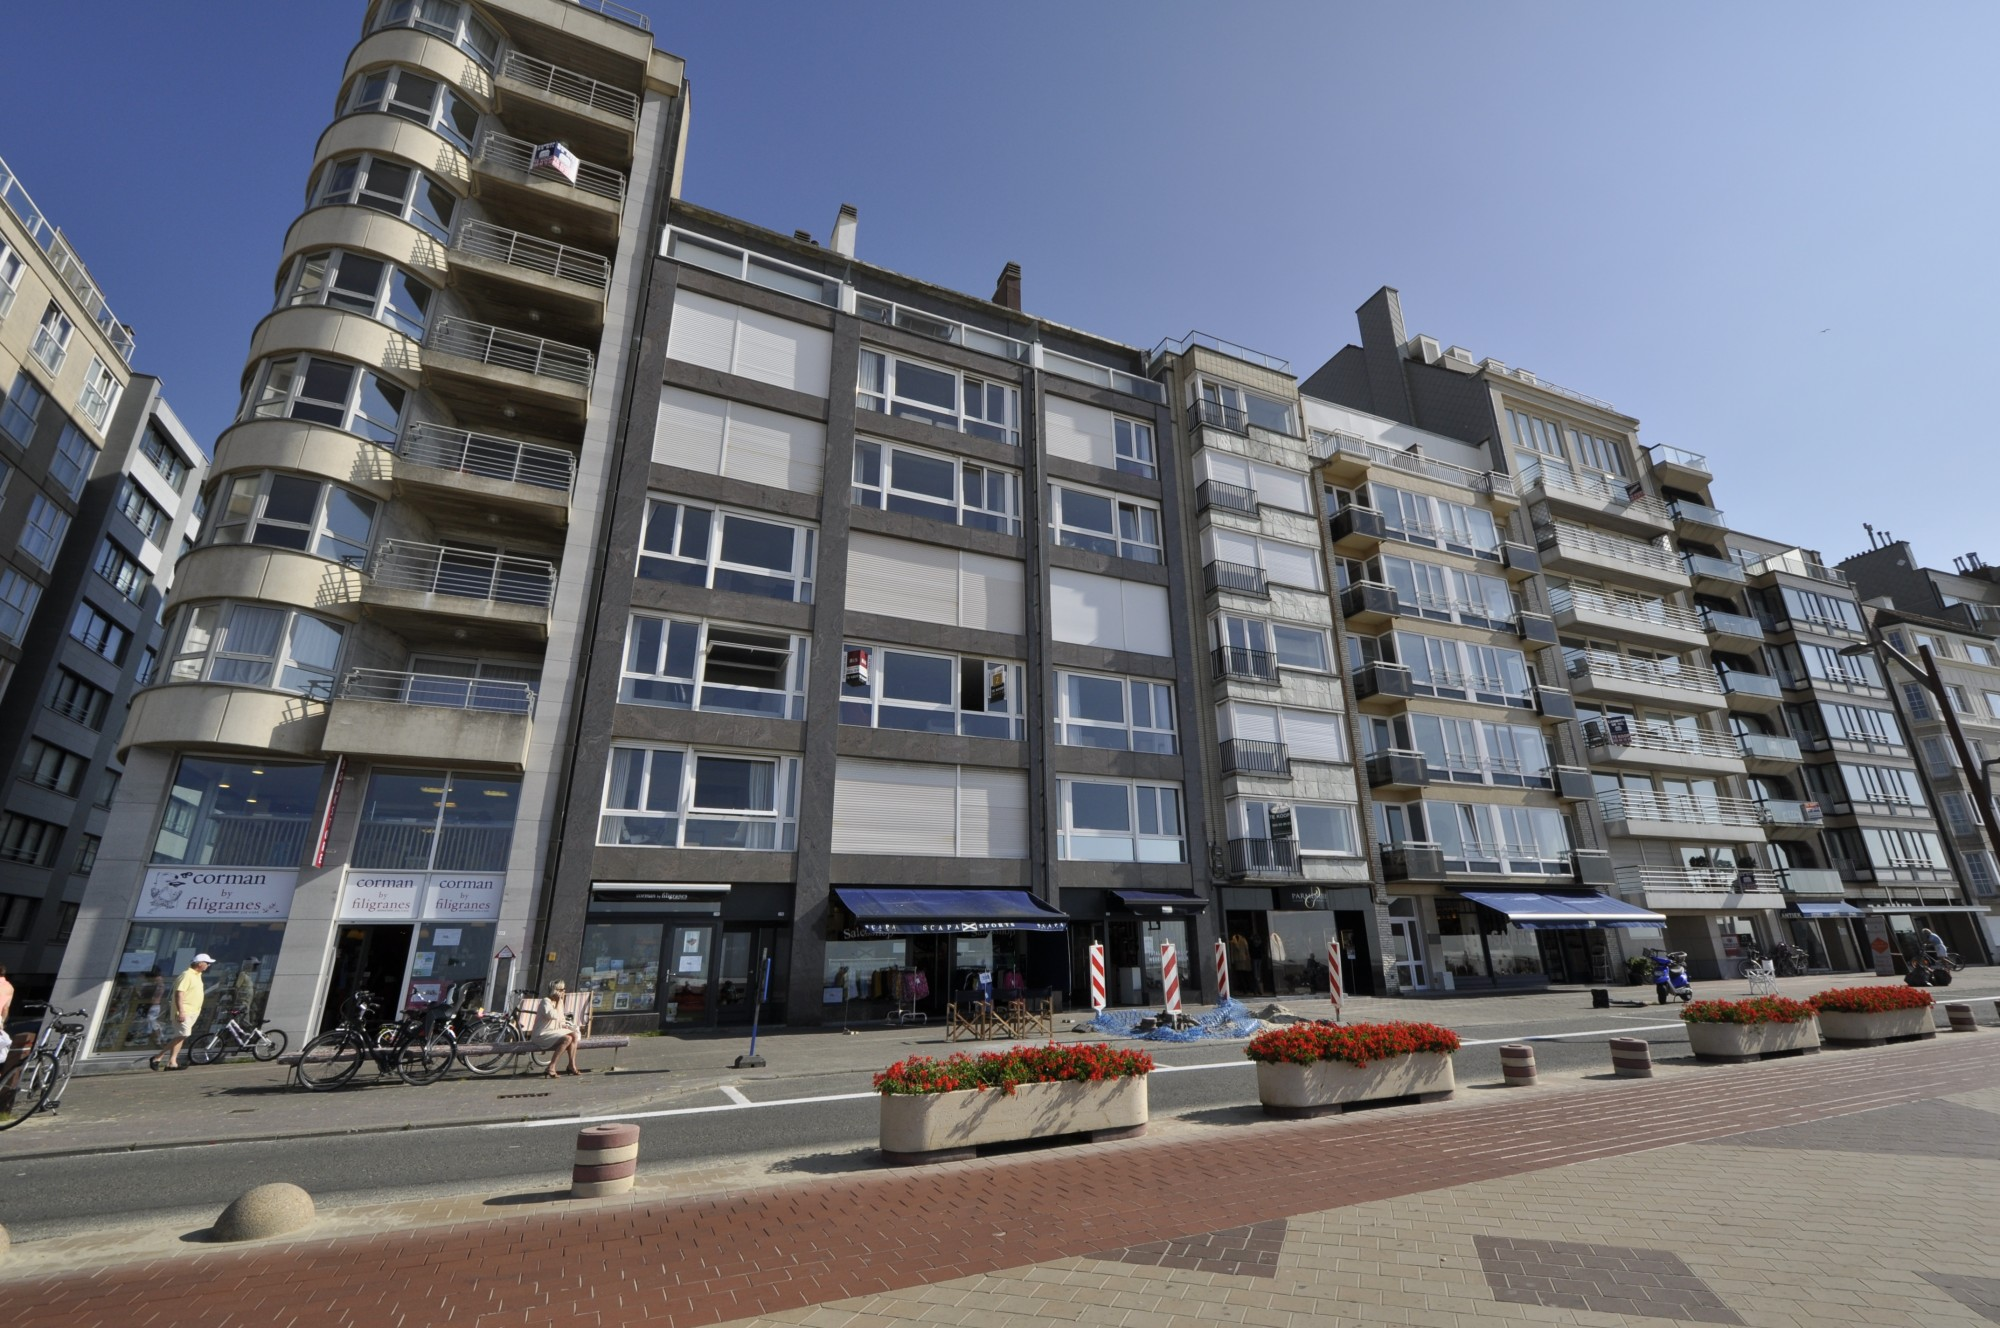 Locations commerces agence immobili re prestige knokke for Locations agences immobilieres